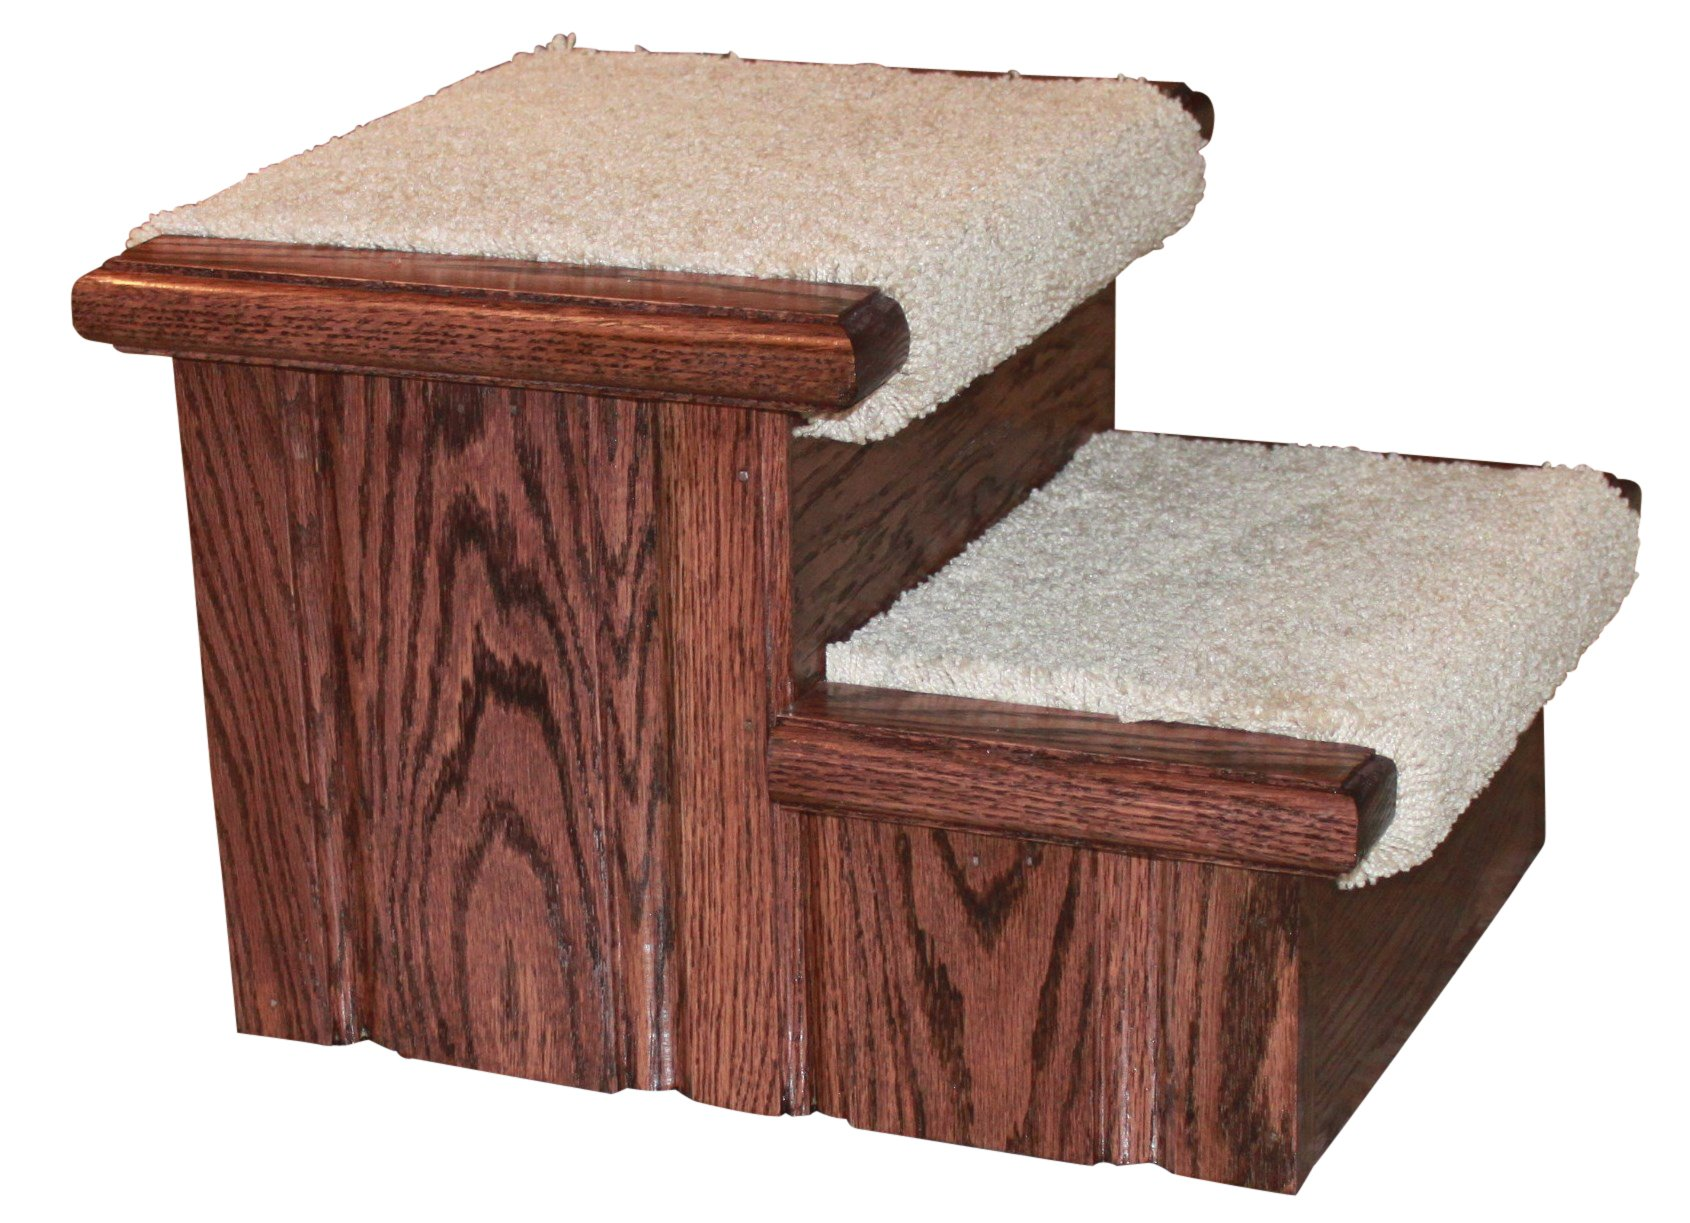 Rich Cherry Finished Solid Oak Step Stool With Carpeted Tread 11 ½'' Tall